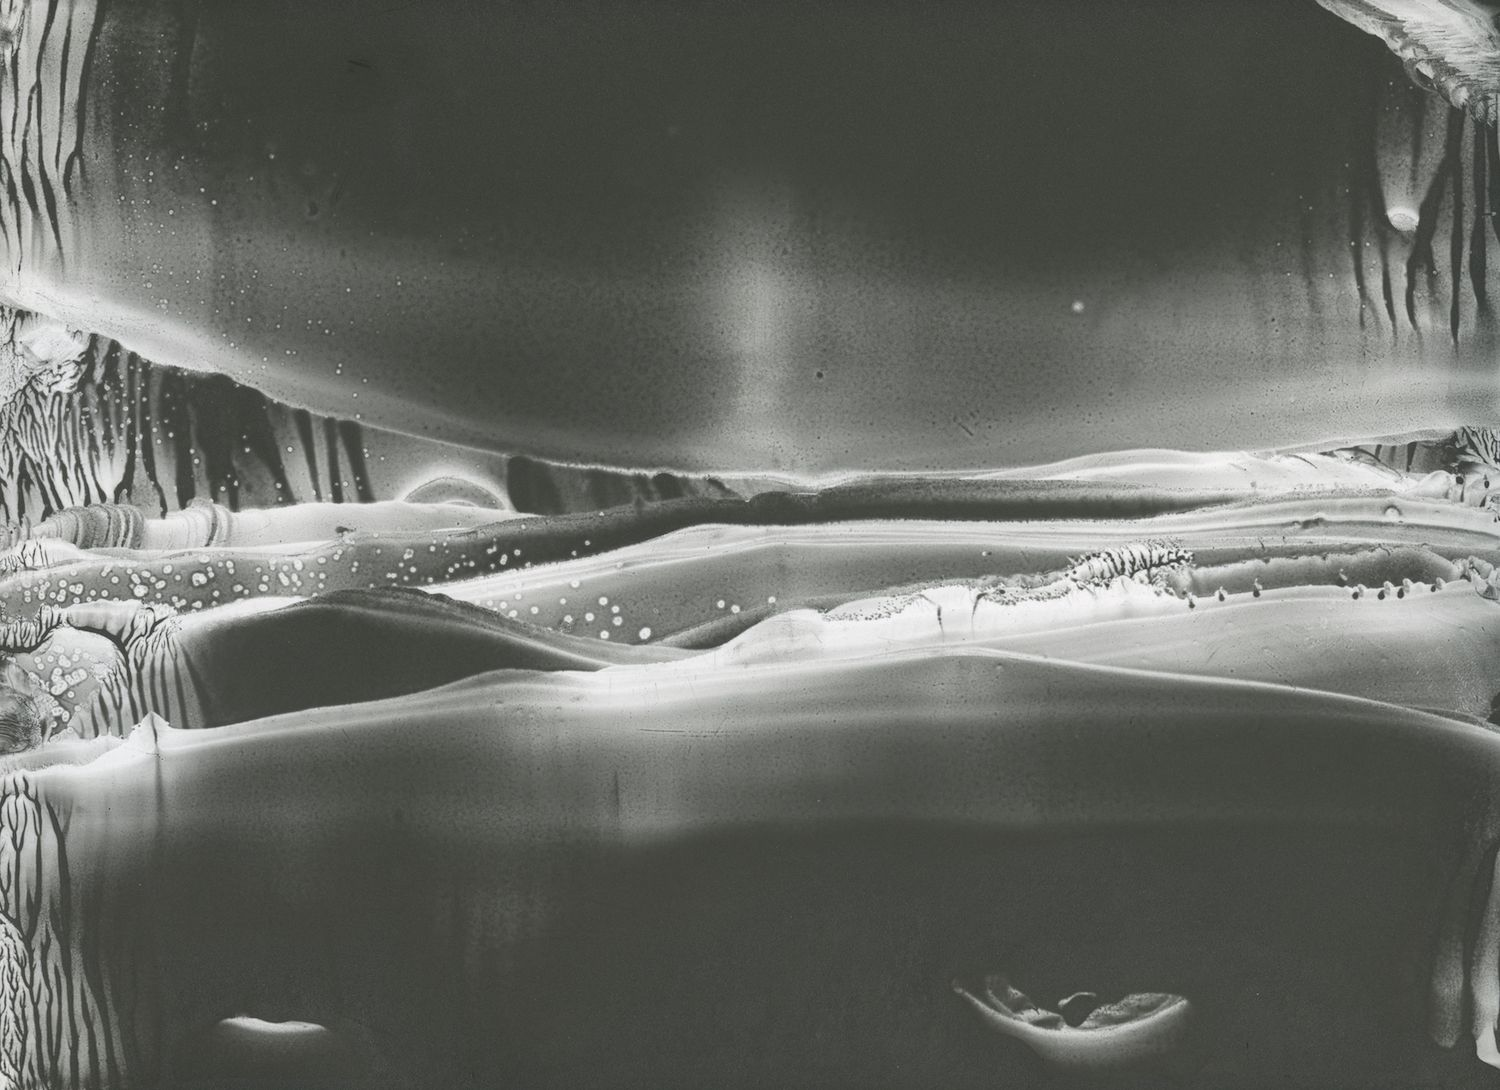 Roland Flexner, Untitled LGY 54, 2012, Liquid graphite on paper, 9 x 12 inches